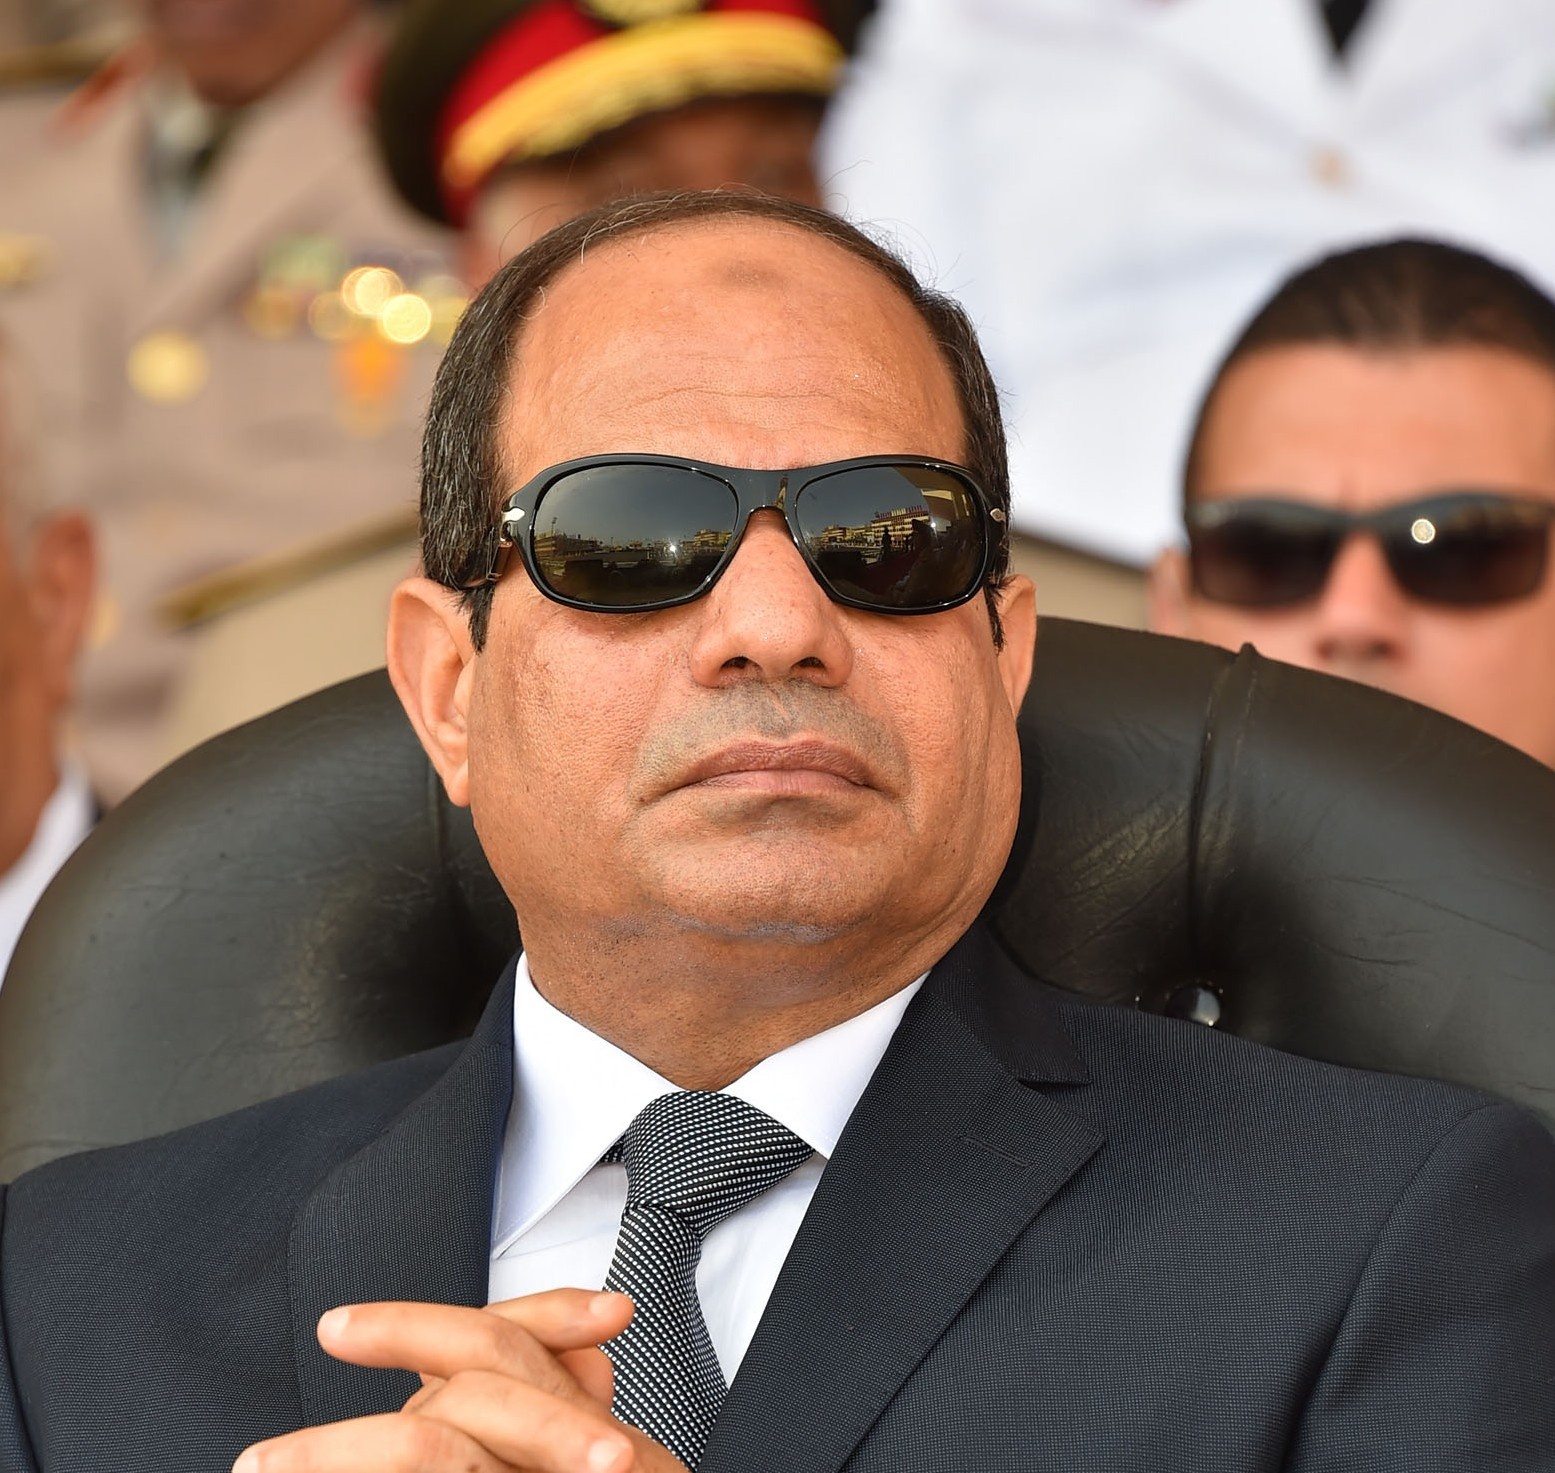 We have delivered much of what we committed to do even against difficult odds: Al-Sisi to DNE